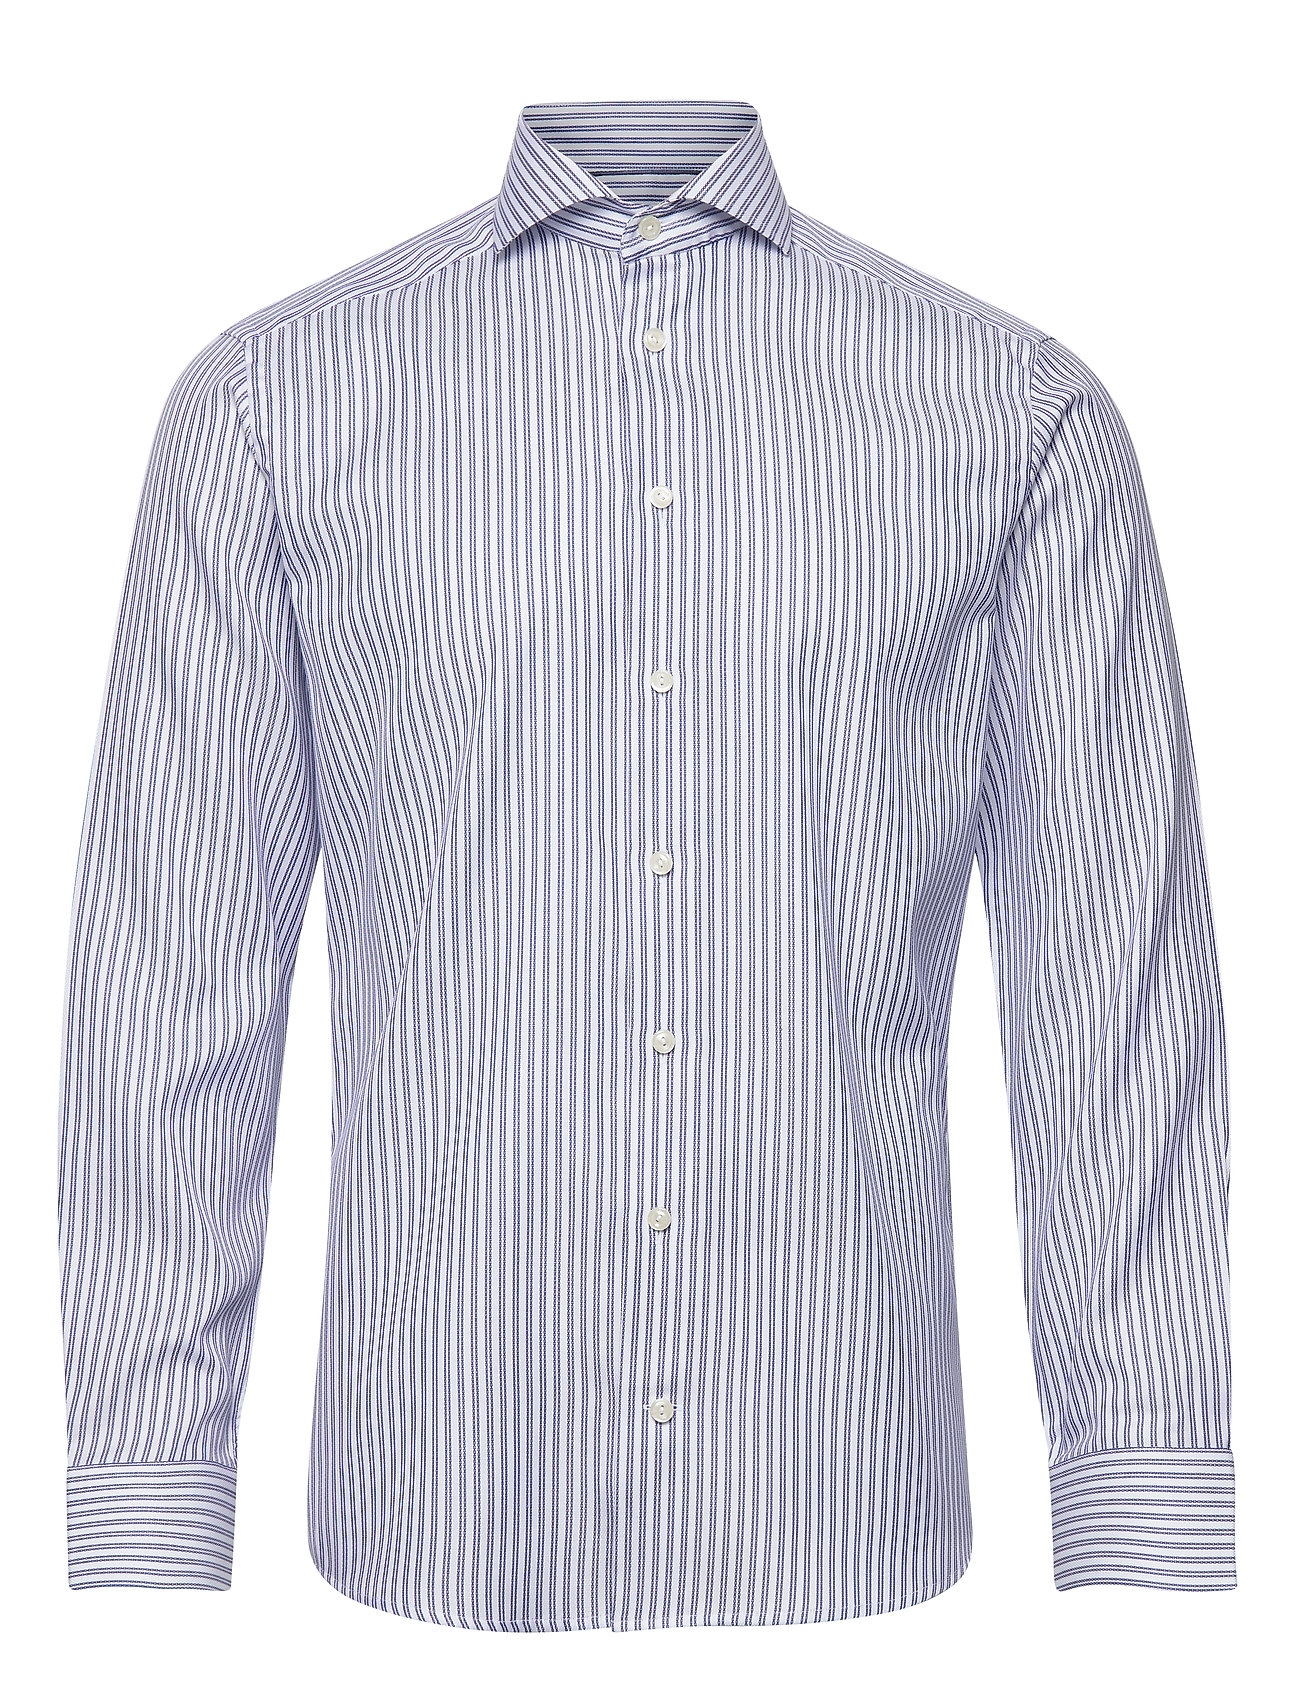 Eton Navy Striped Cotton-Tencel Twill Shirt - BLUE